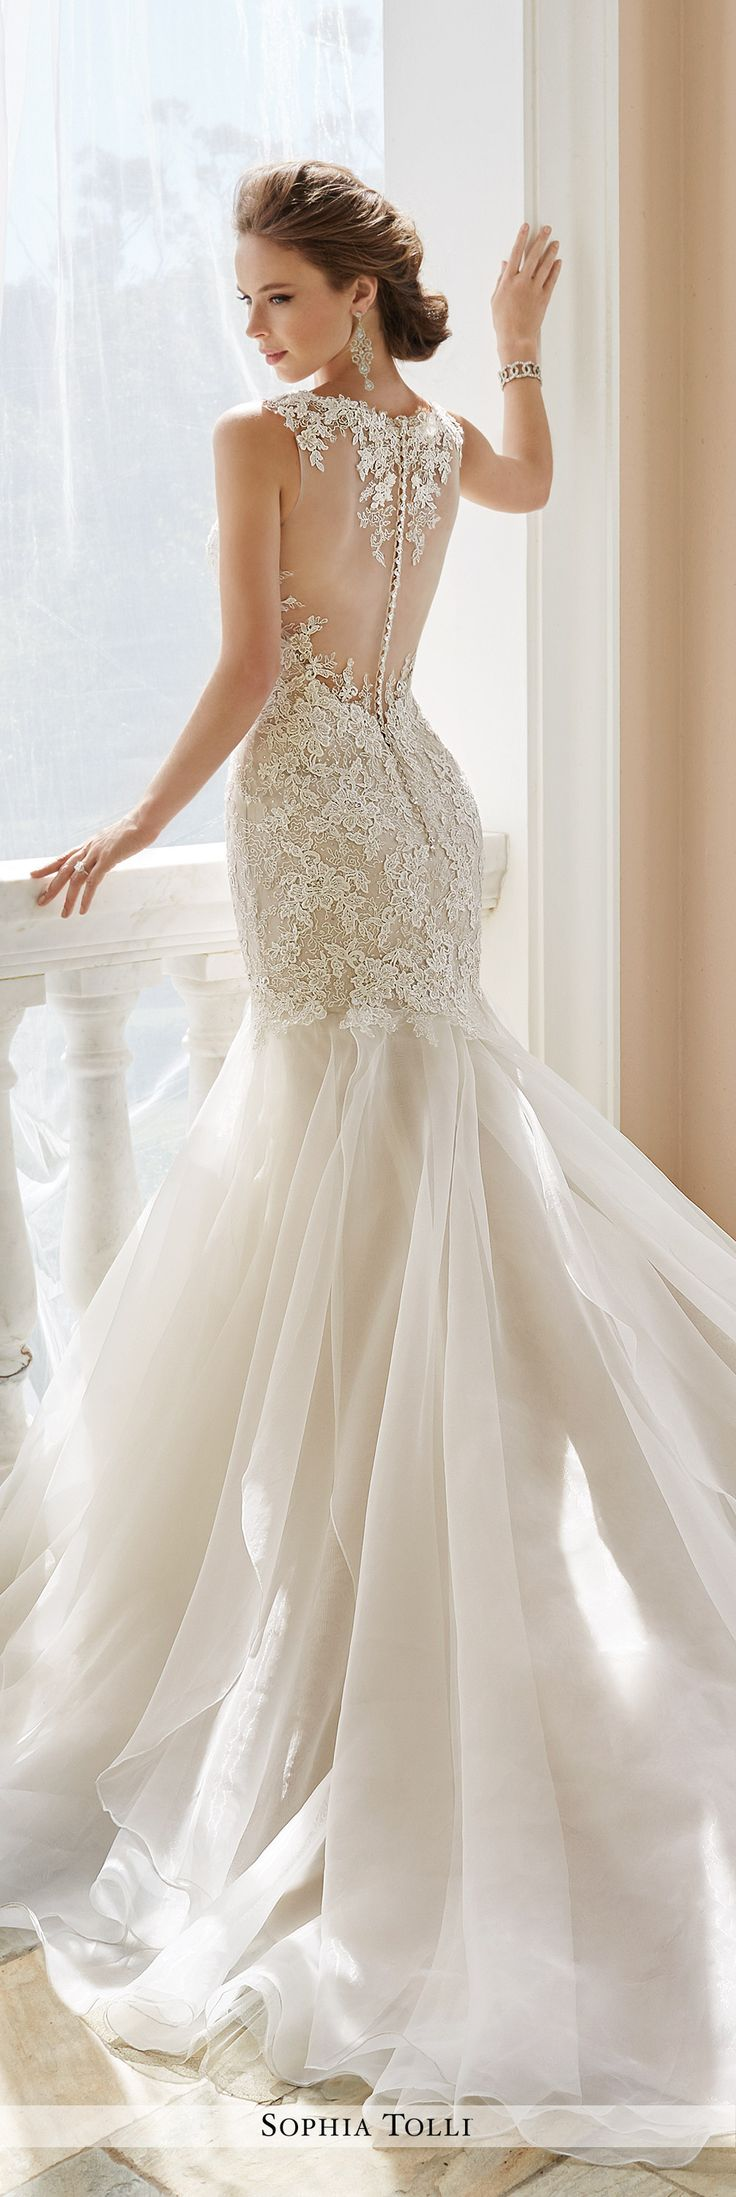 trumpet wedding dresses 25 best ideas about trumpet wedding dresses on 8092